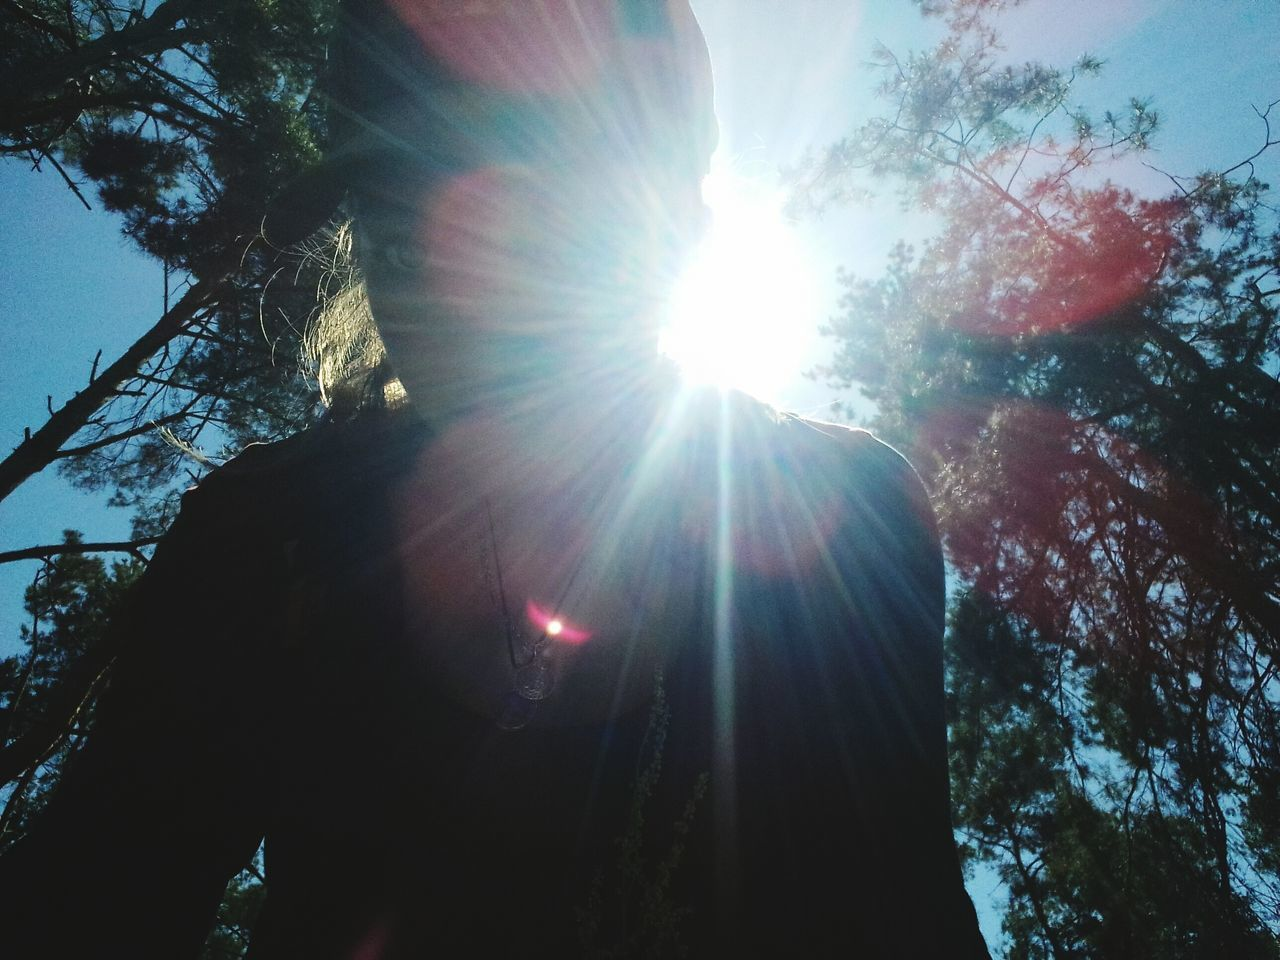 sunbeam, sun, lens flare, sunlight, tree, bright, nature, sunny, low angle view, shining, outdoors, day, one person, growth, branch, beauty in nature, sky, people